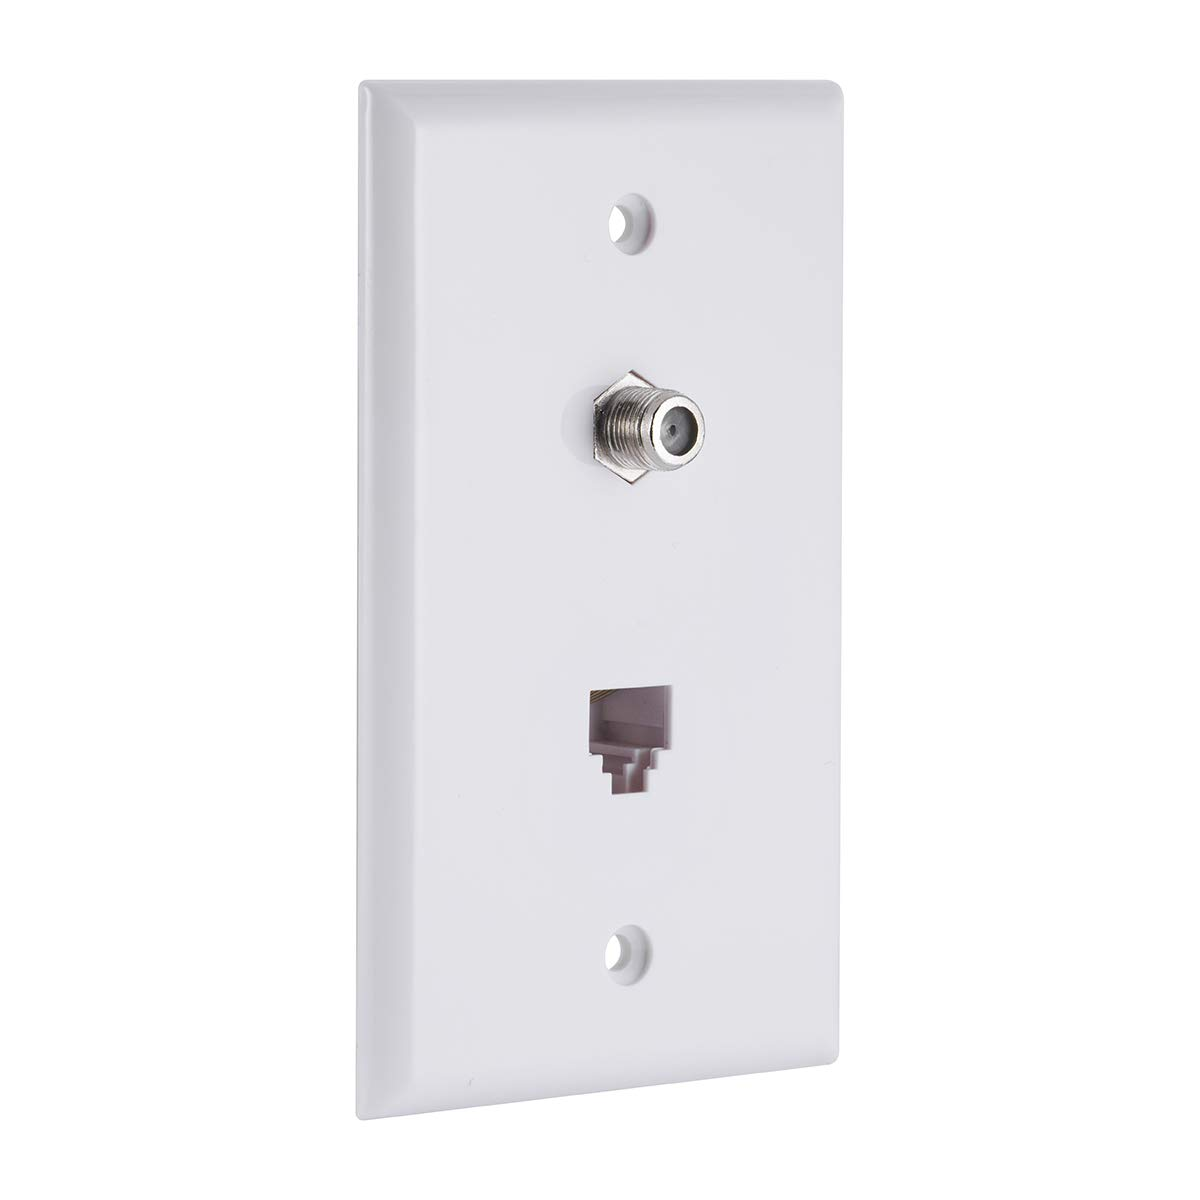 GE Coaxial and Telephone Jack Wall Plate, 1 Pack, Single Gang Box, Coax, Phone, Mounting Hardware Included, White, 40093